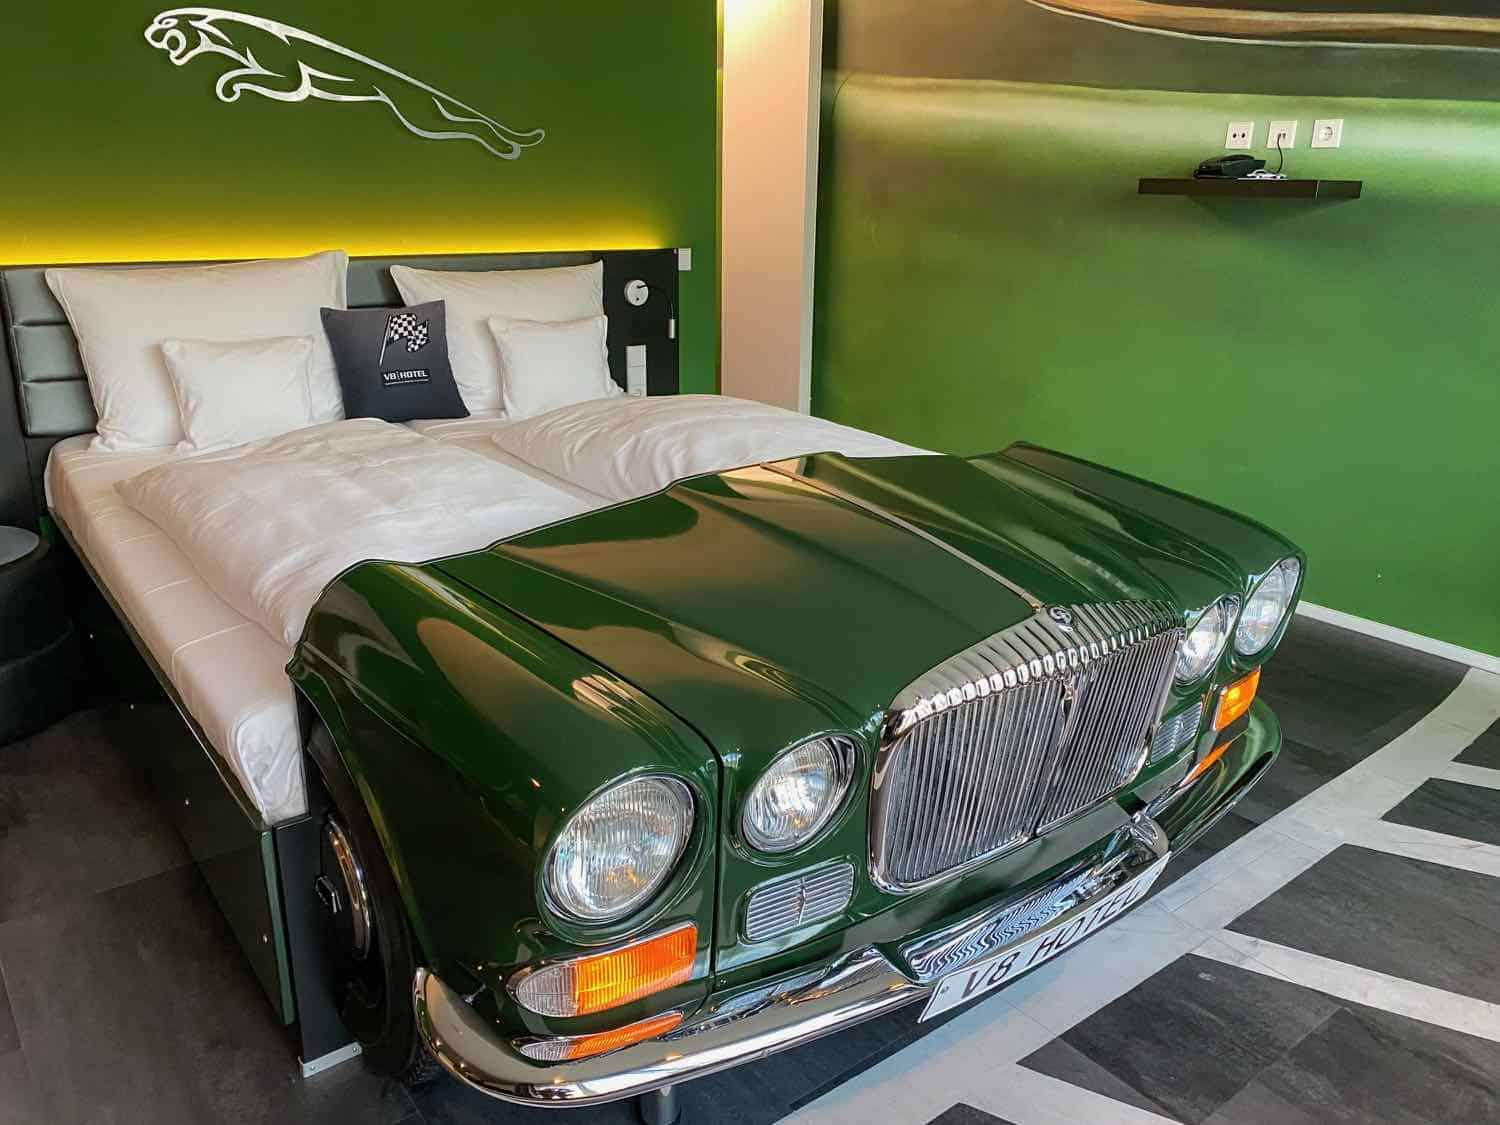 A bed made out of a green Jaguar car